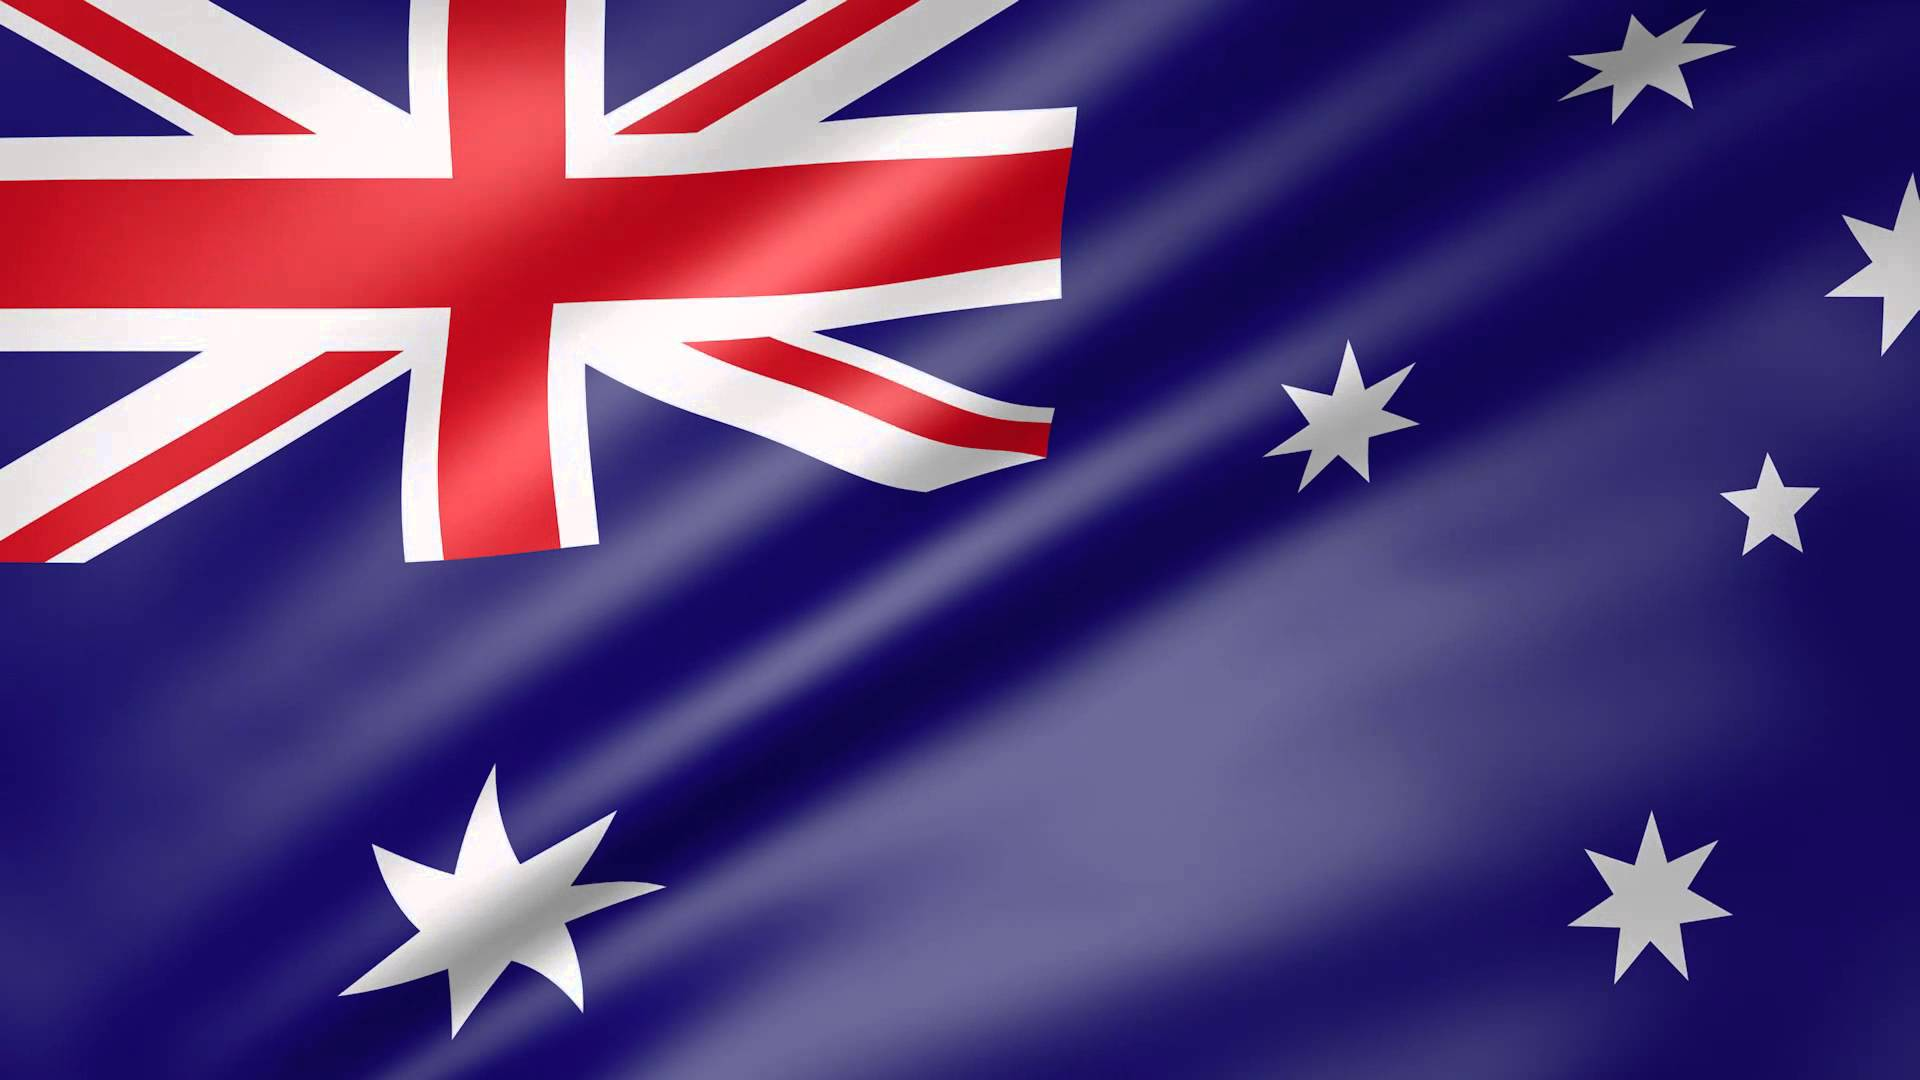 15,000 Australia Real High Quality Targeted Website Traffic